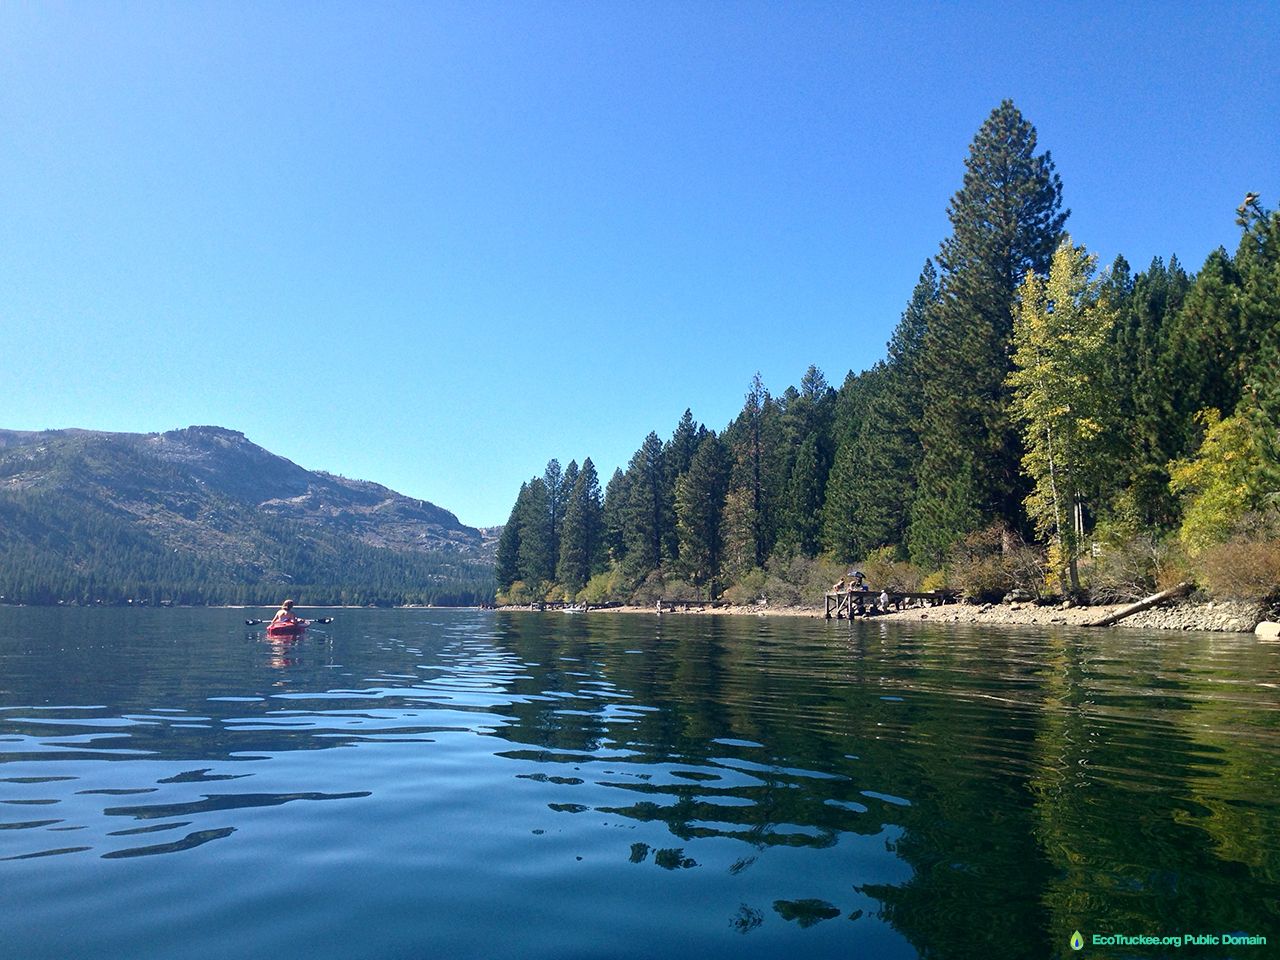 Donner Lake Summer Kayaking on Donner Lake